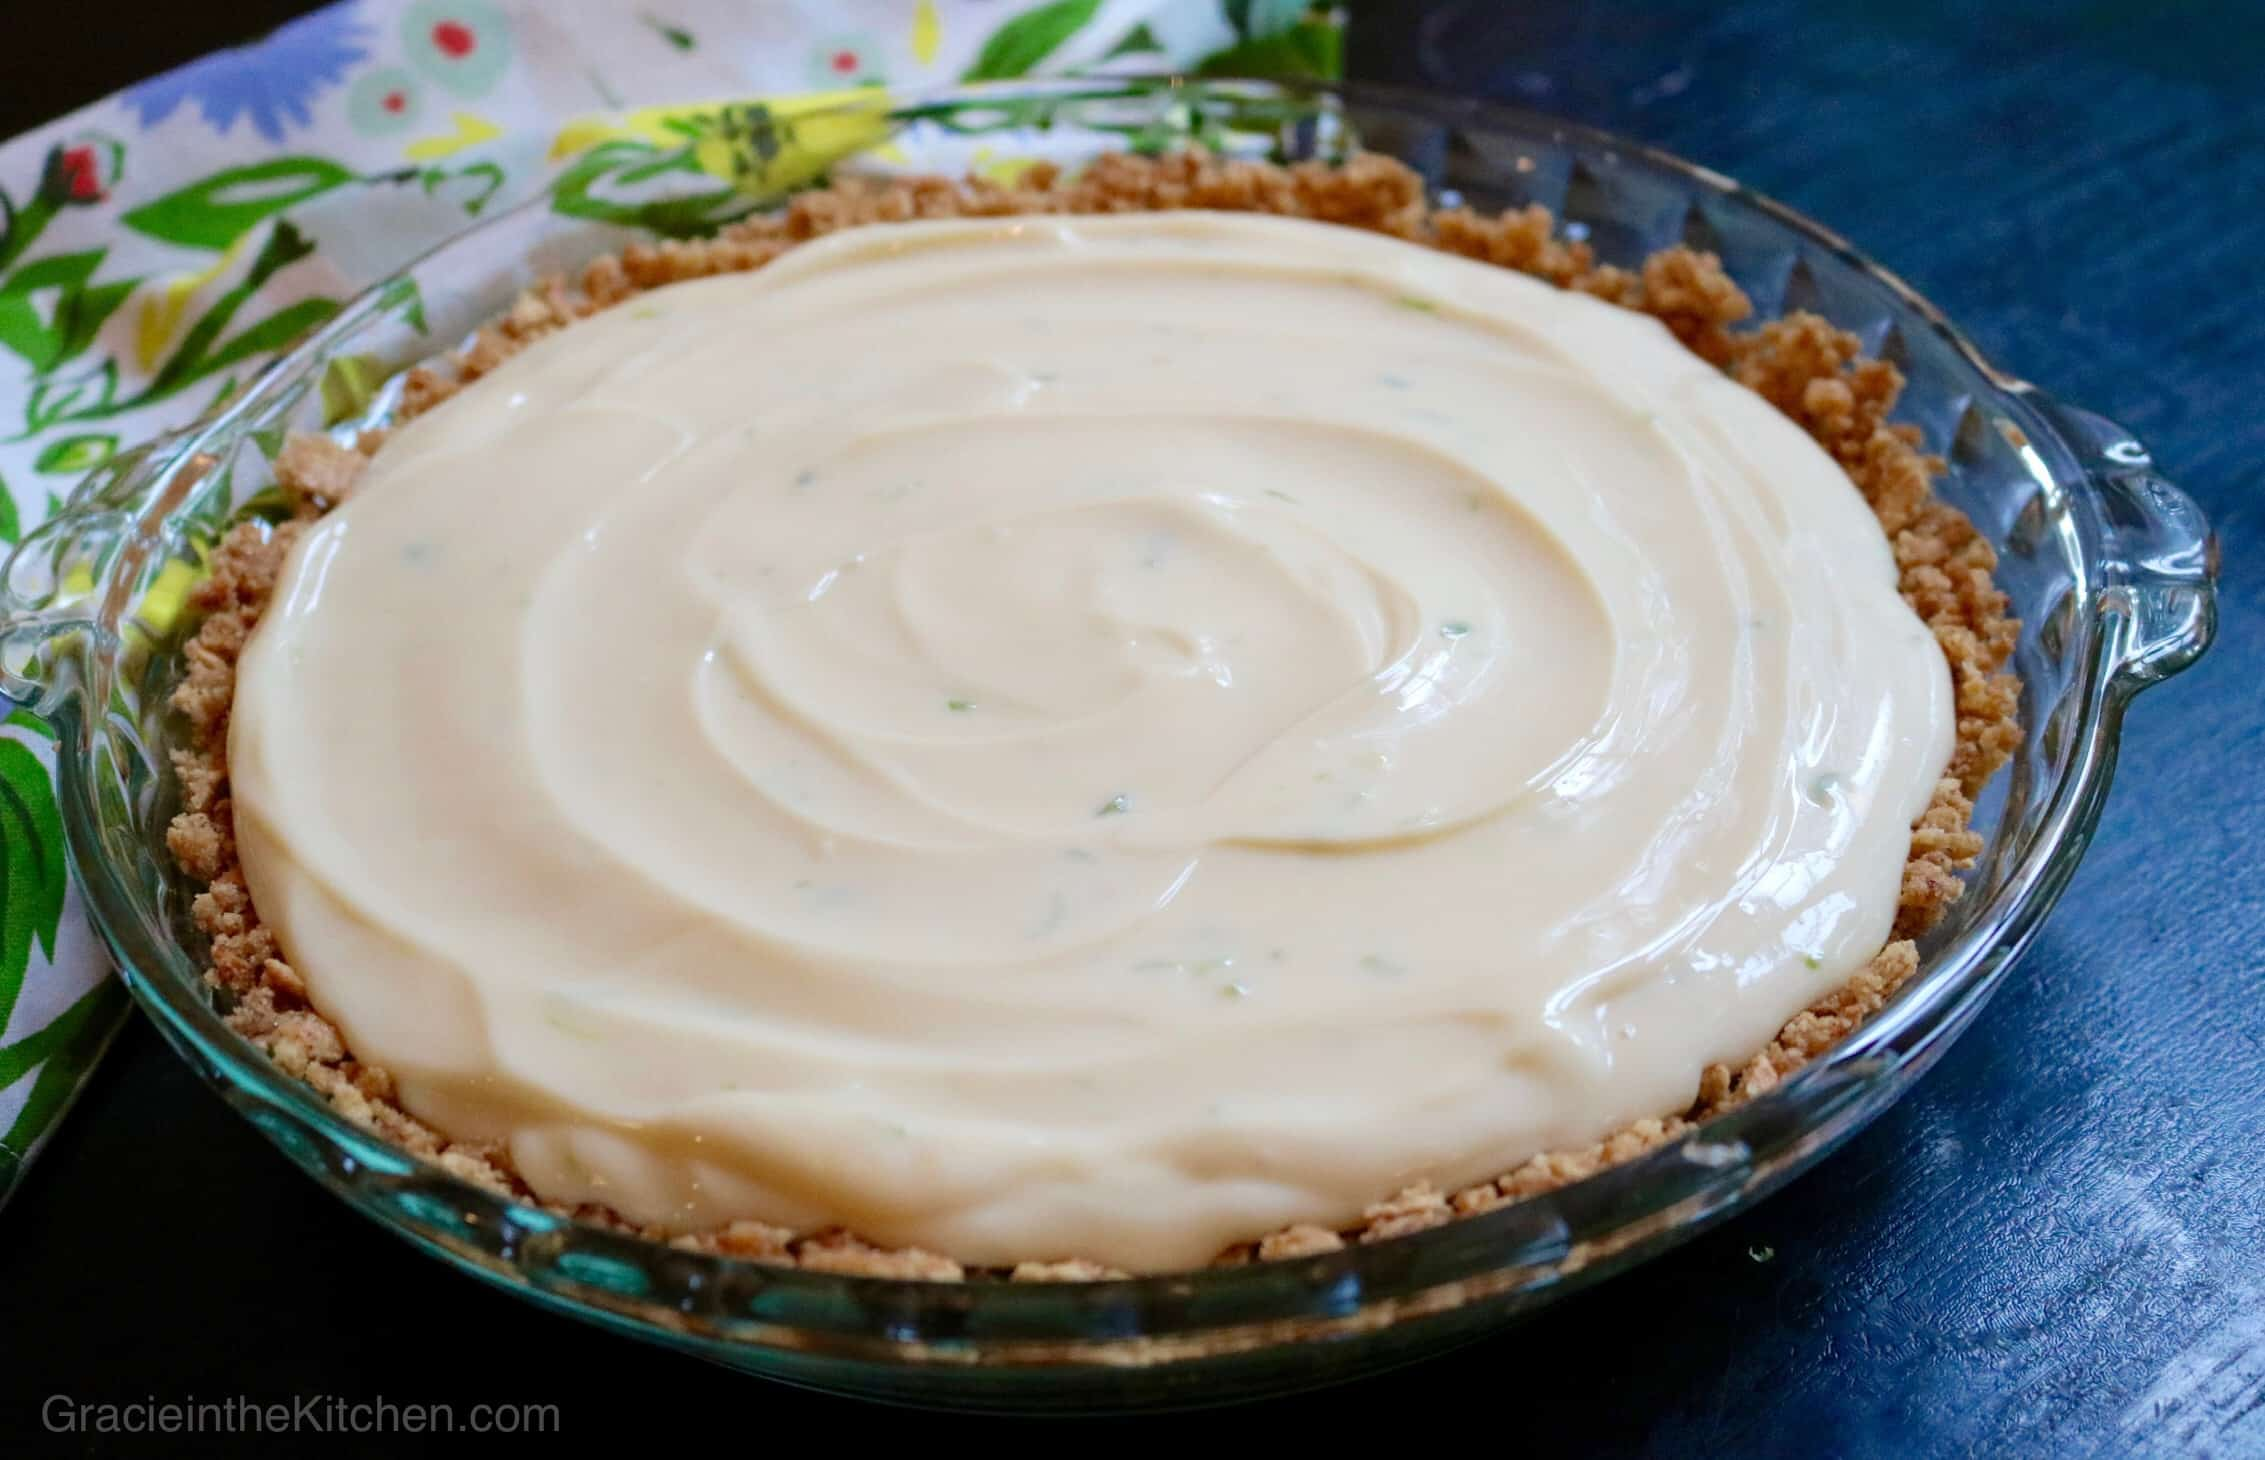 Best Key Lime Pie - Getting ready to put our delicious key lime pie into the oven!